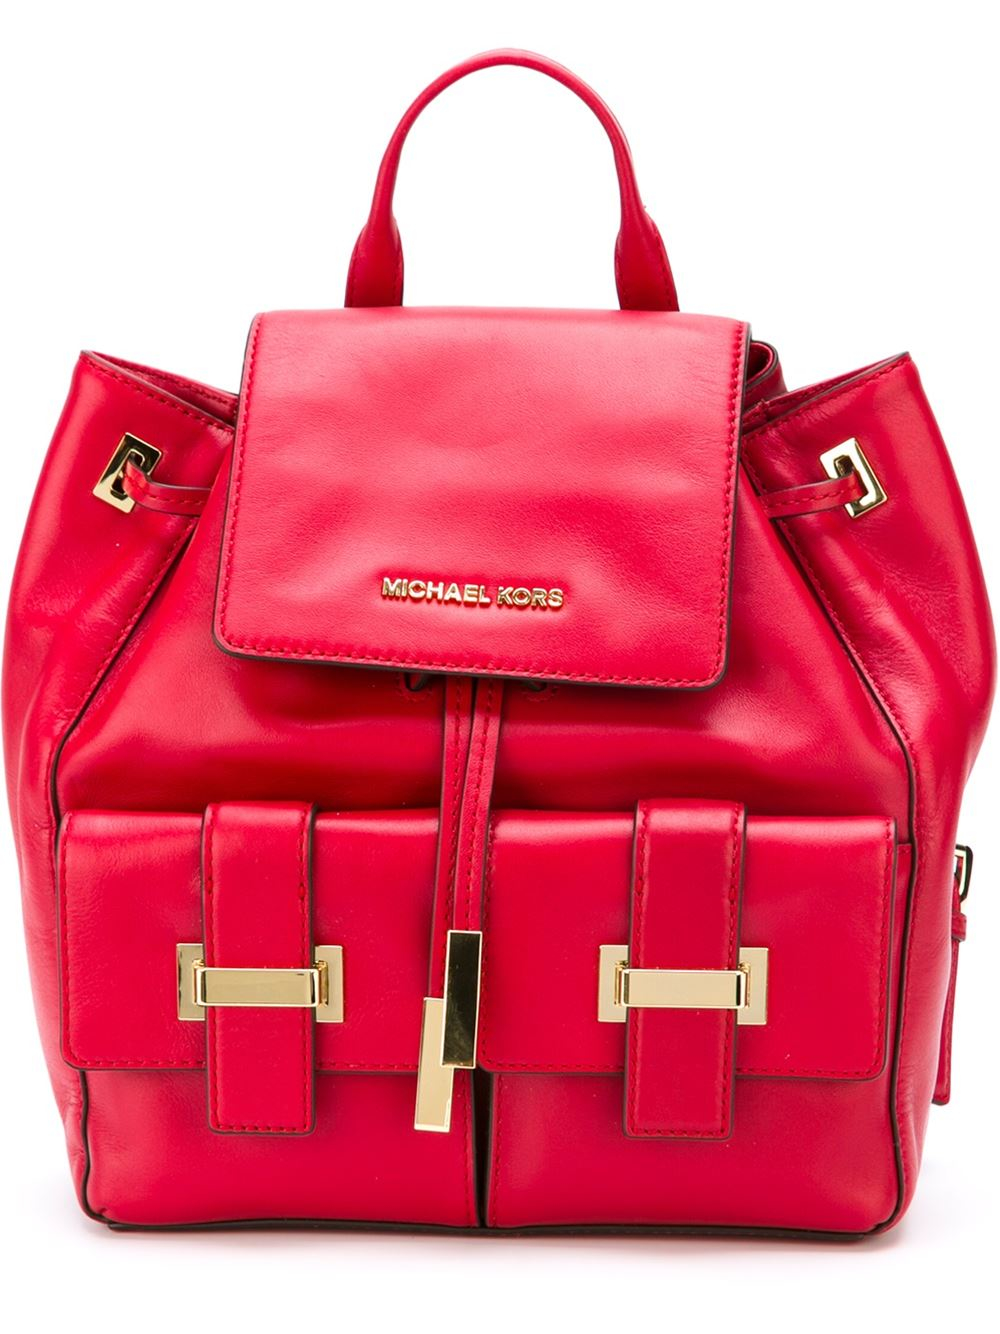 9c0c6343cdcc ... Bags Wallets Lyst - Michael Michael Kors marly Backpack in Red .